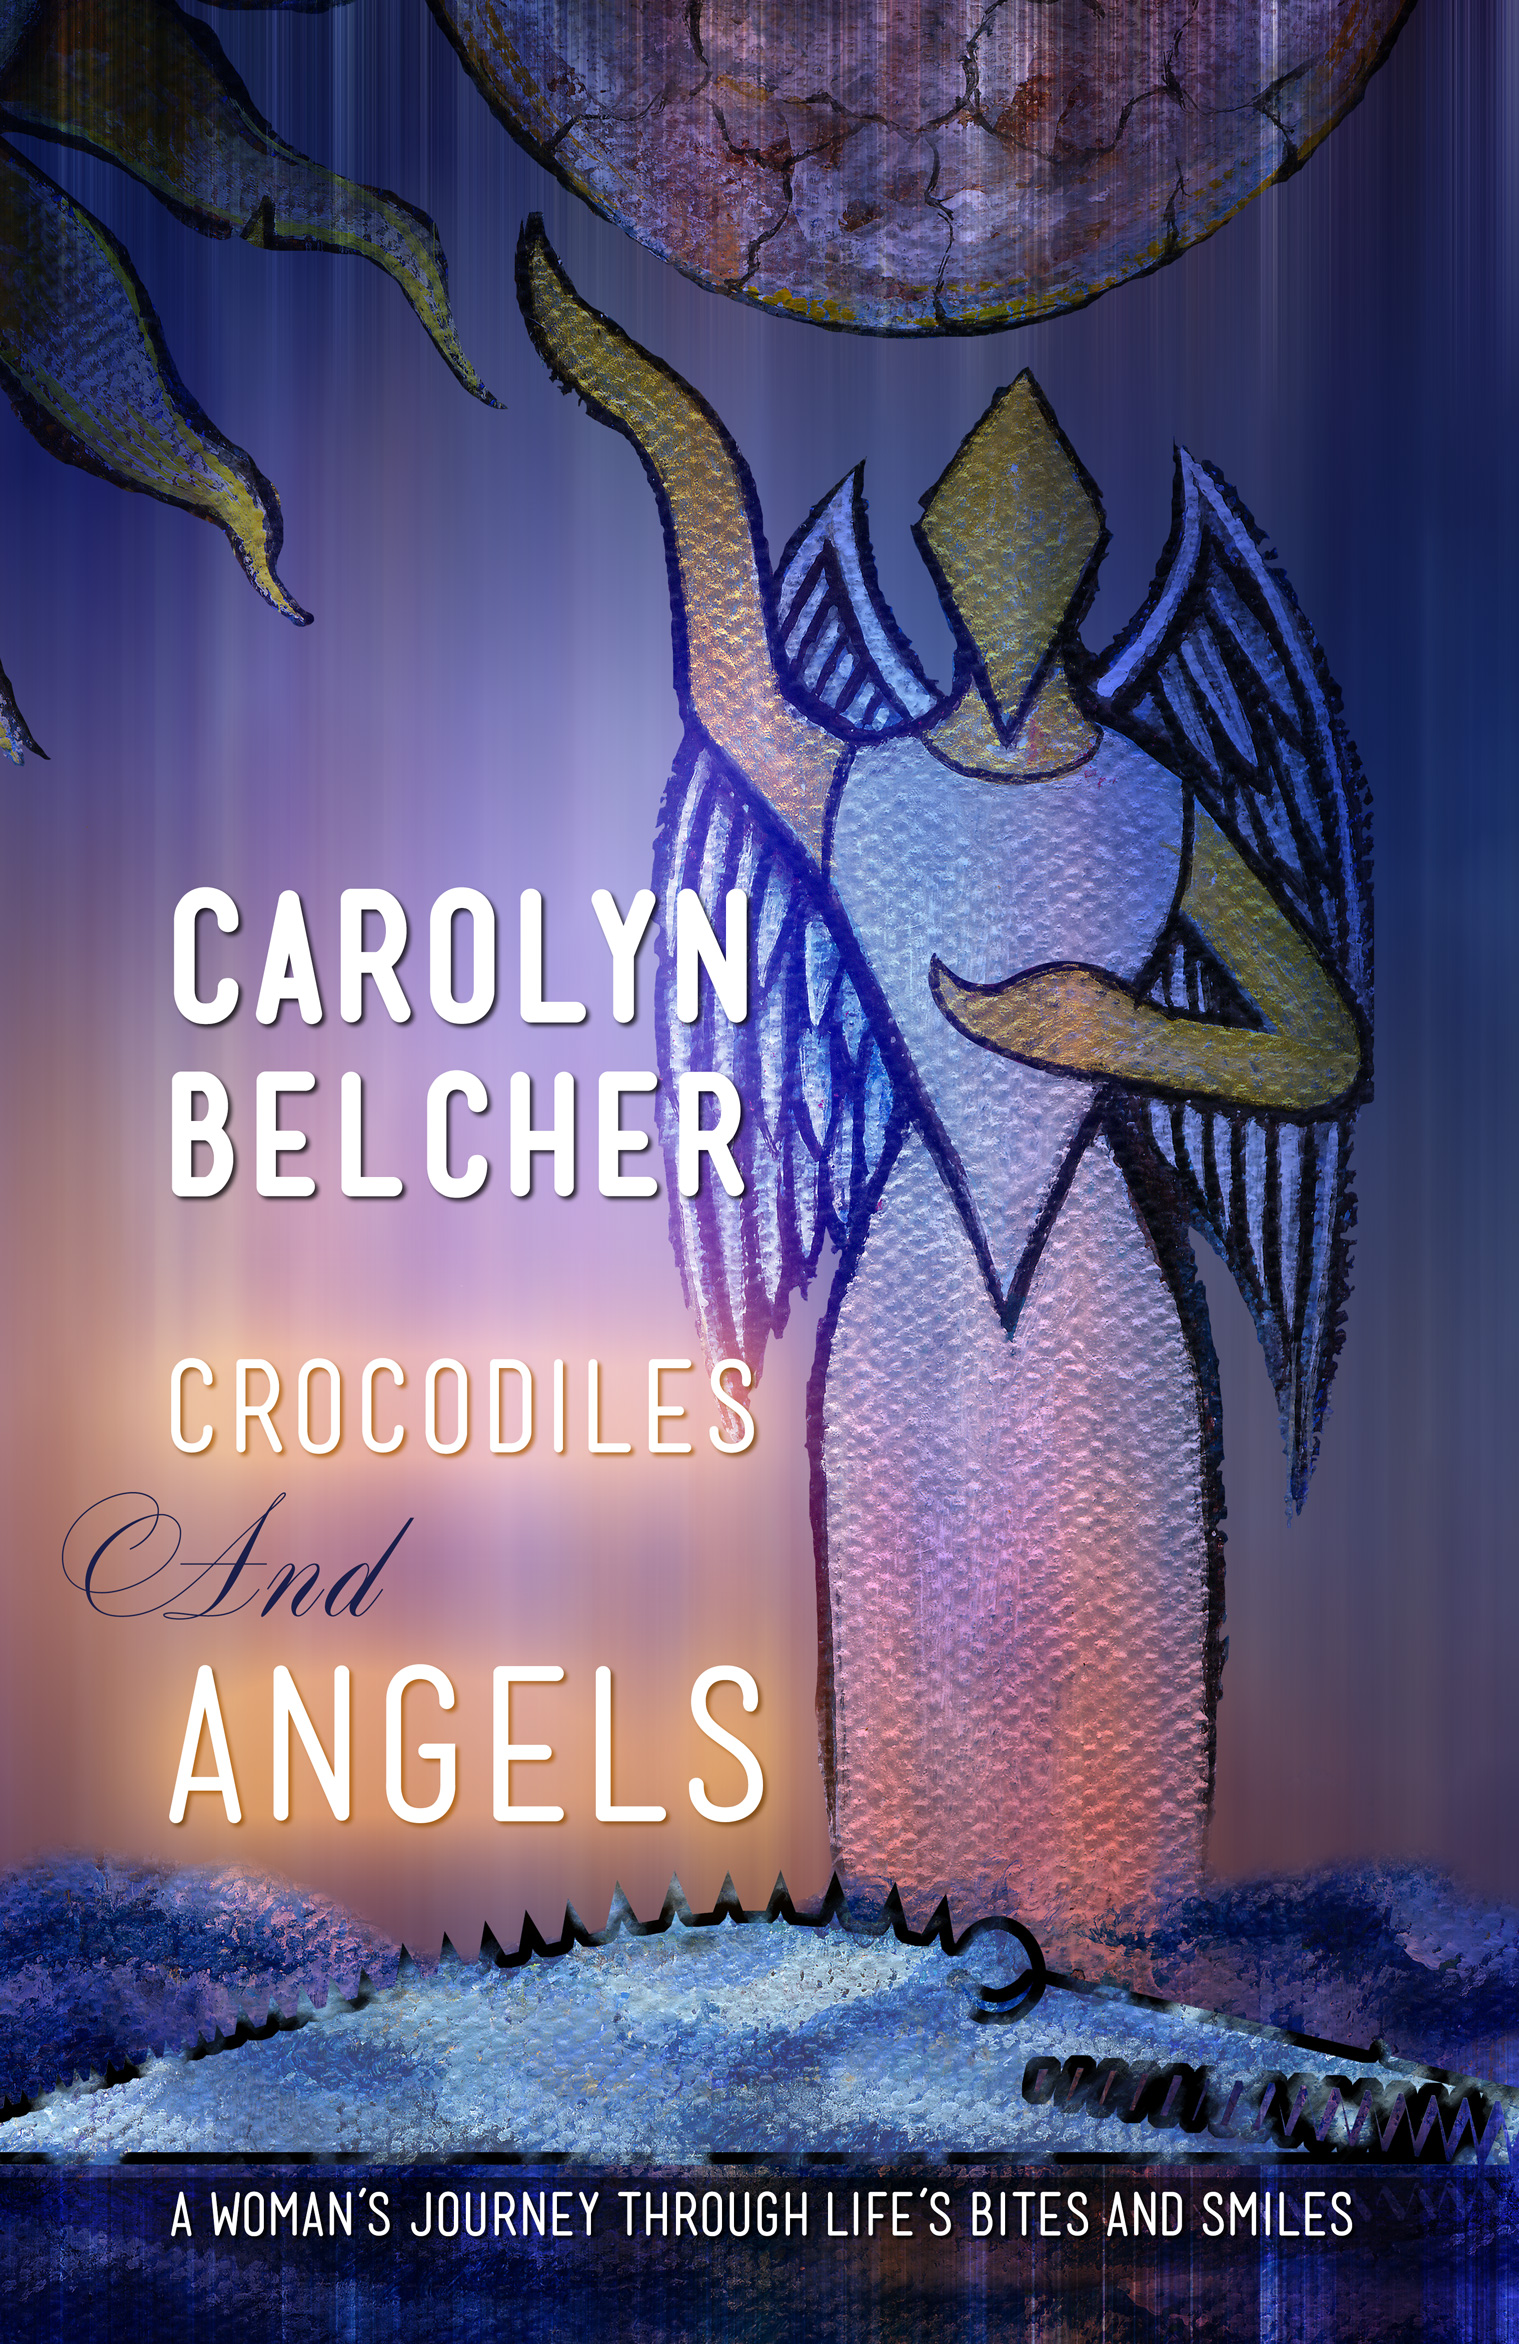 Crocodiles and Angels by Carolyn Belcher front cover image.